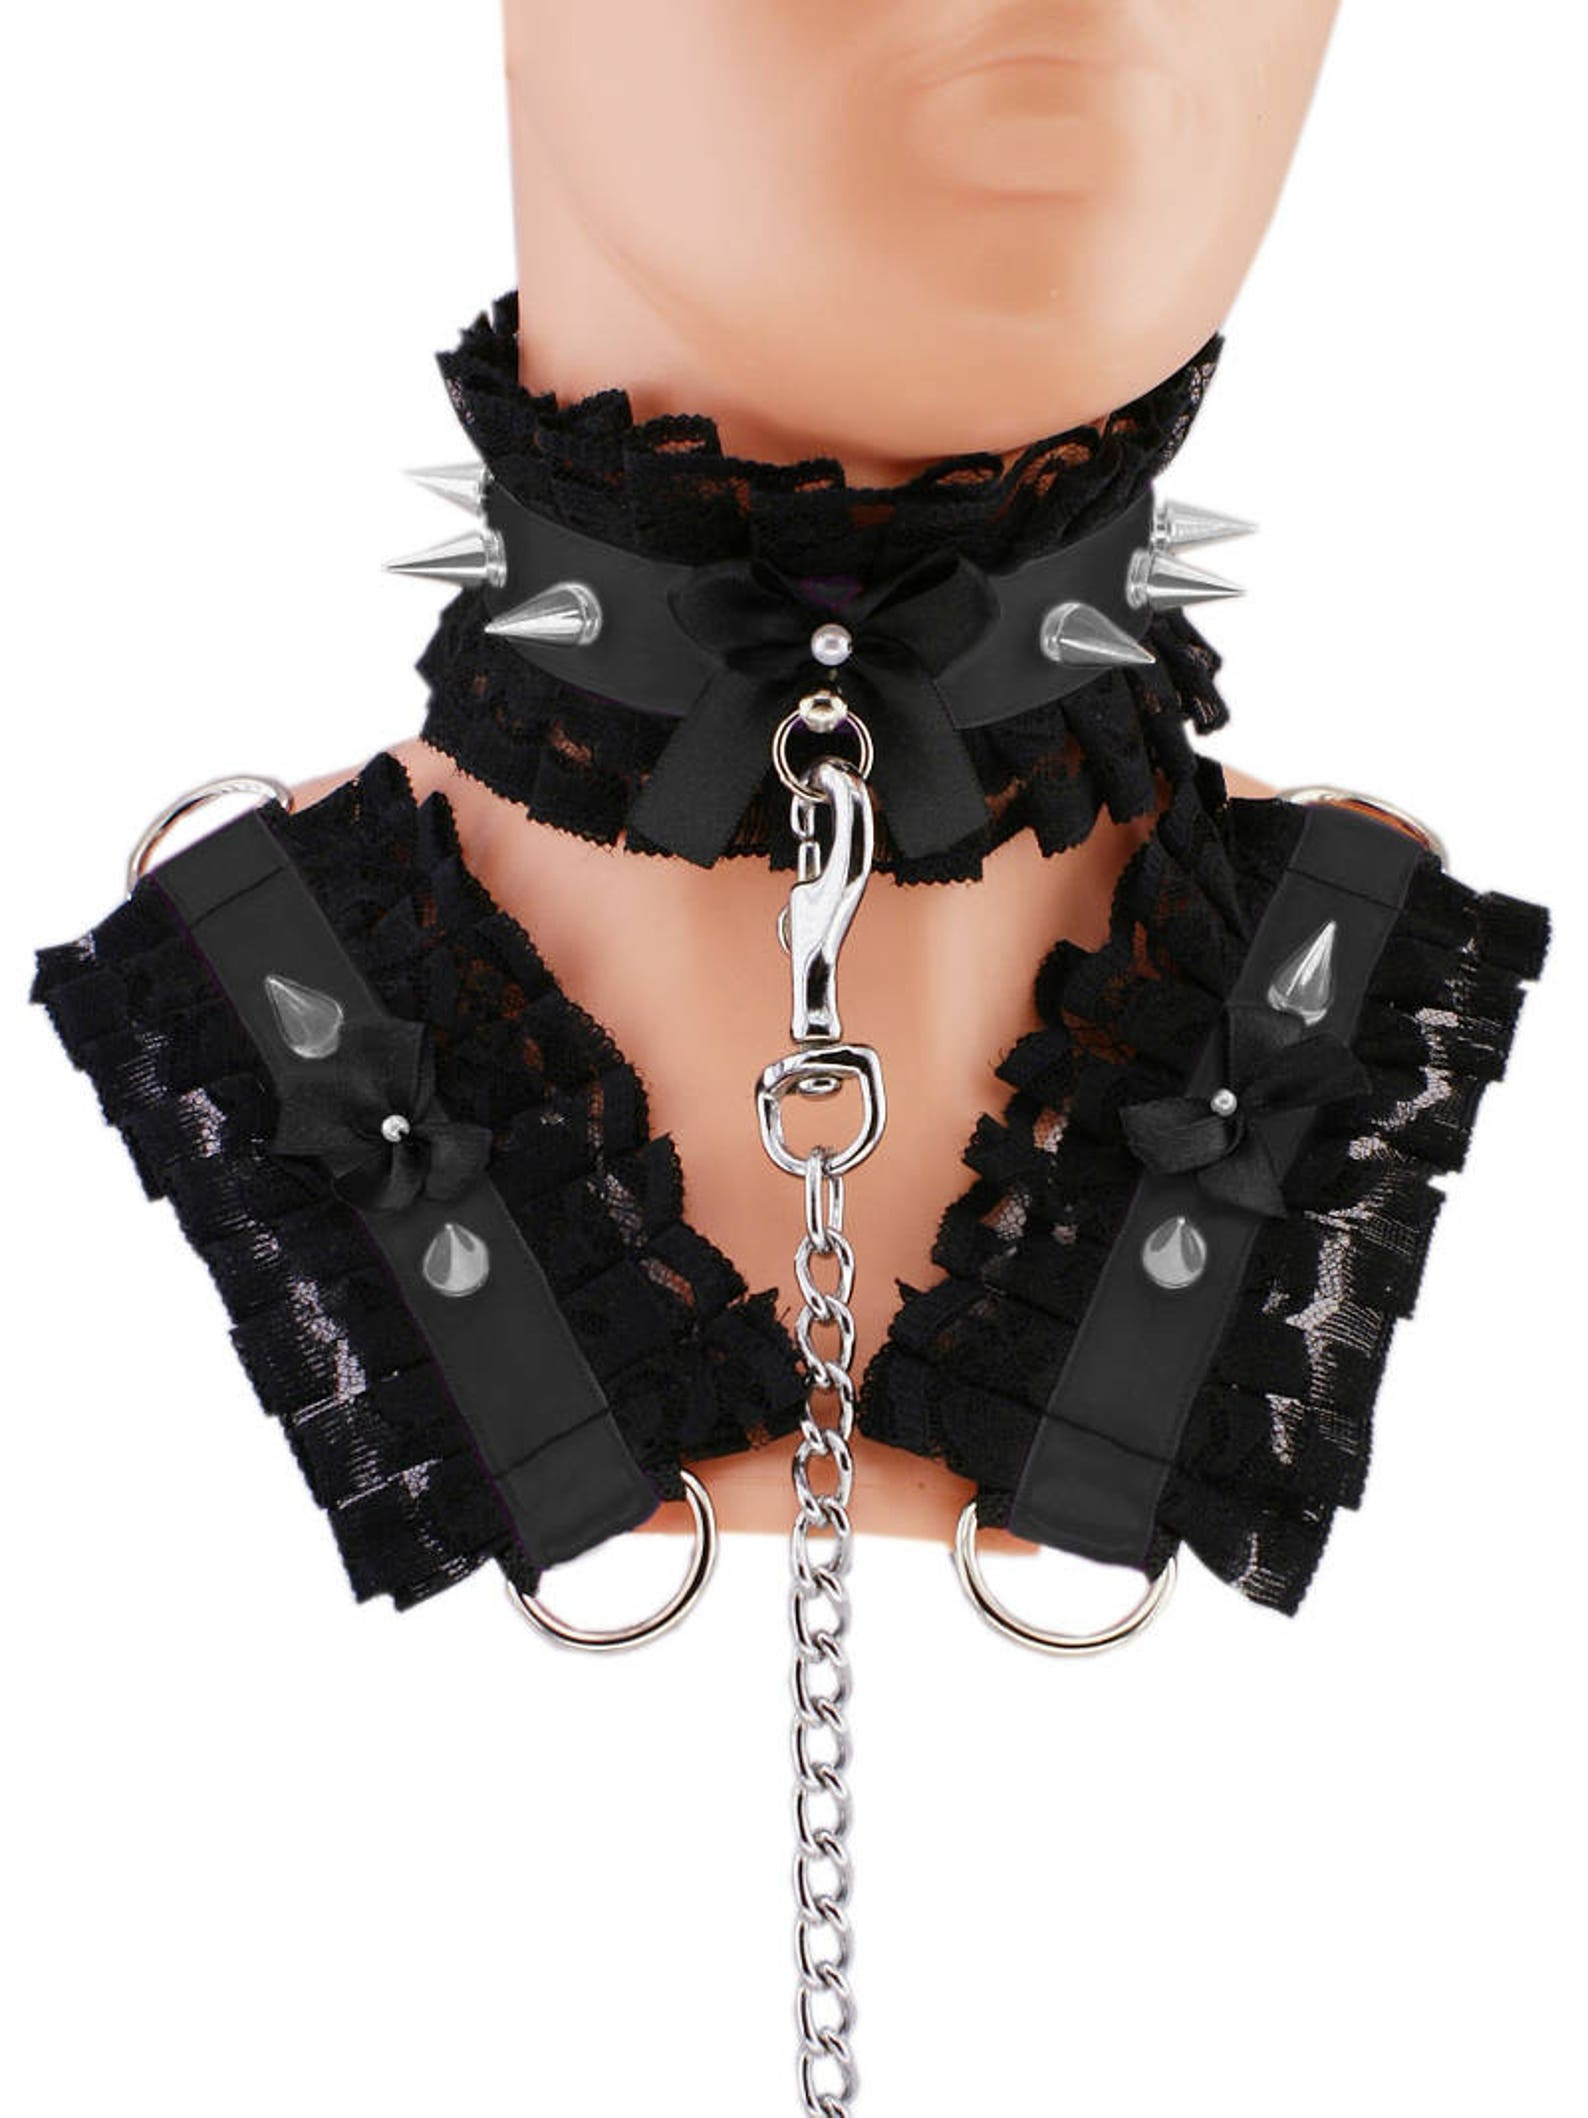 Collars and cuffs bdsm